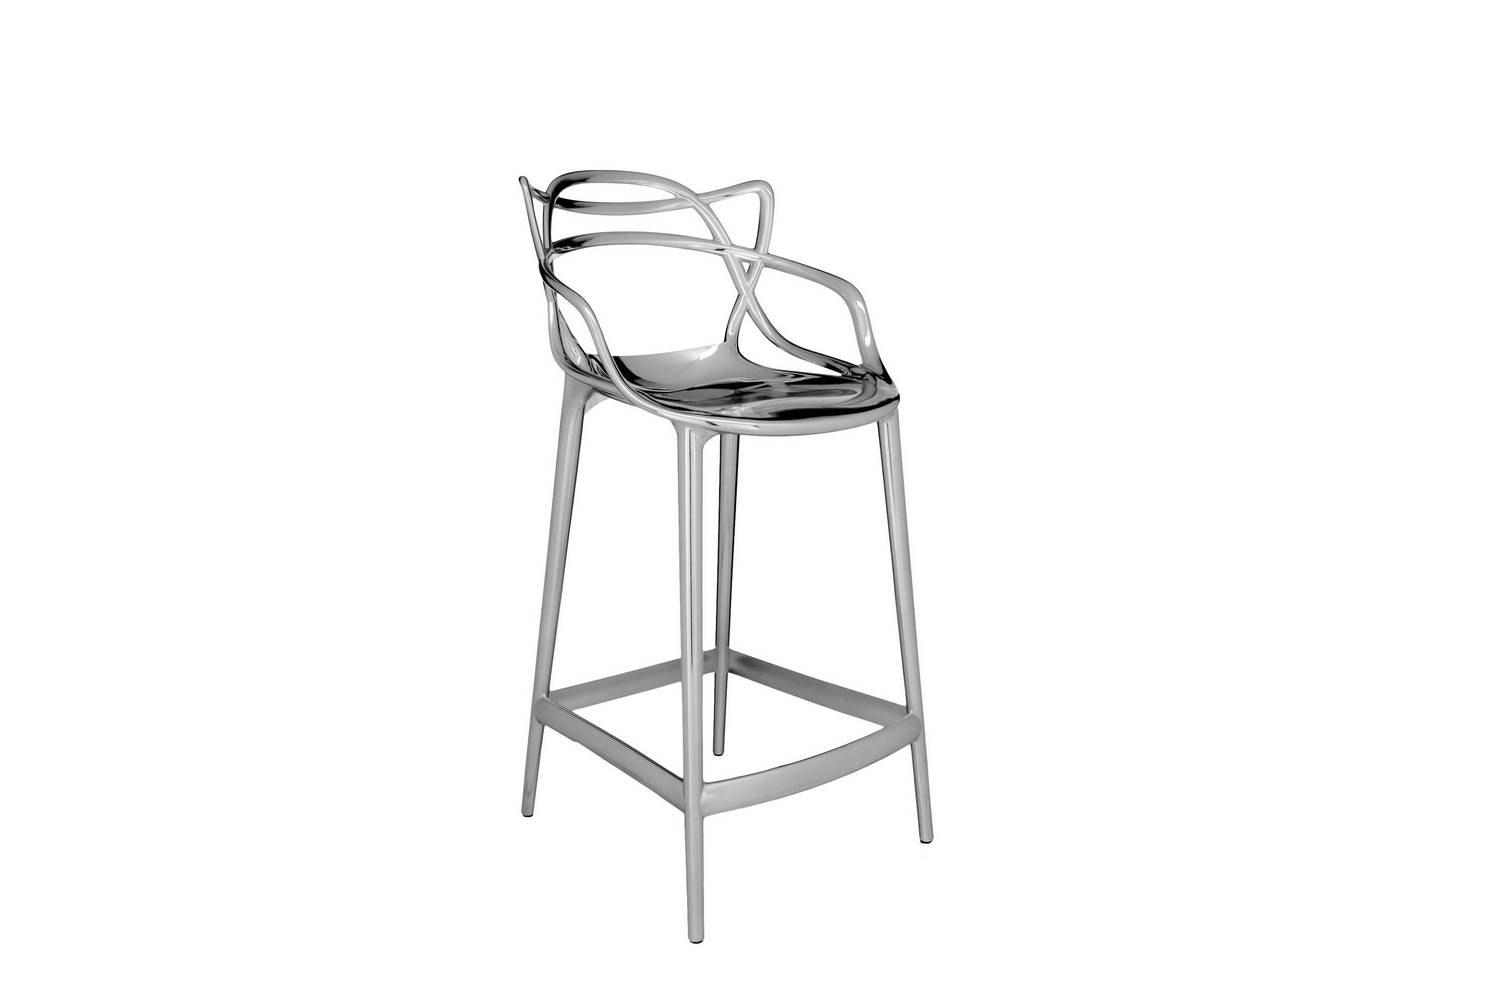 Masters Metallic Low Stool by Philippe Starck with Eugeni Quitllet for Kartell | Space Furniture  sc 1 st  Space Furniture & Masters Metallic Low Stool by Philippe Starck with Eugeni Quitllet ... islam-shia.org